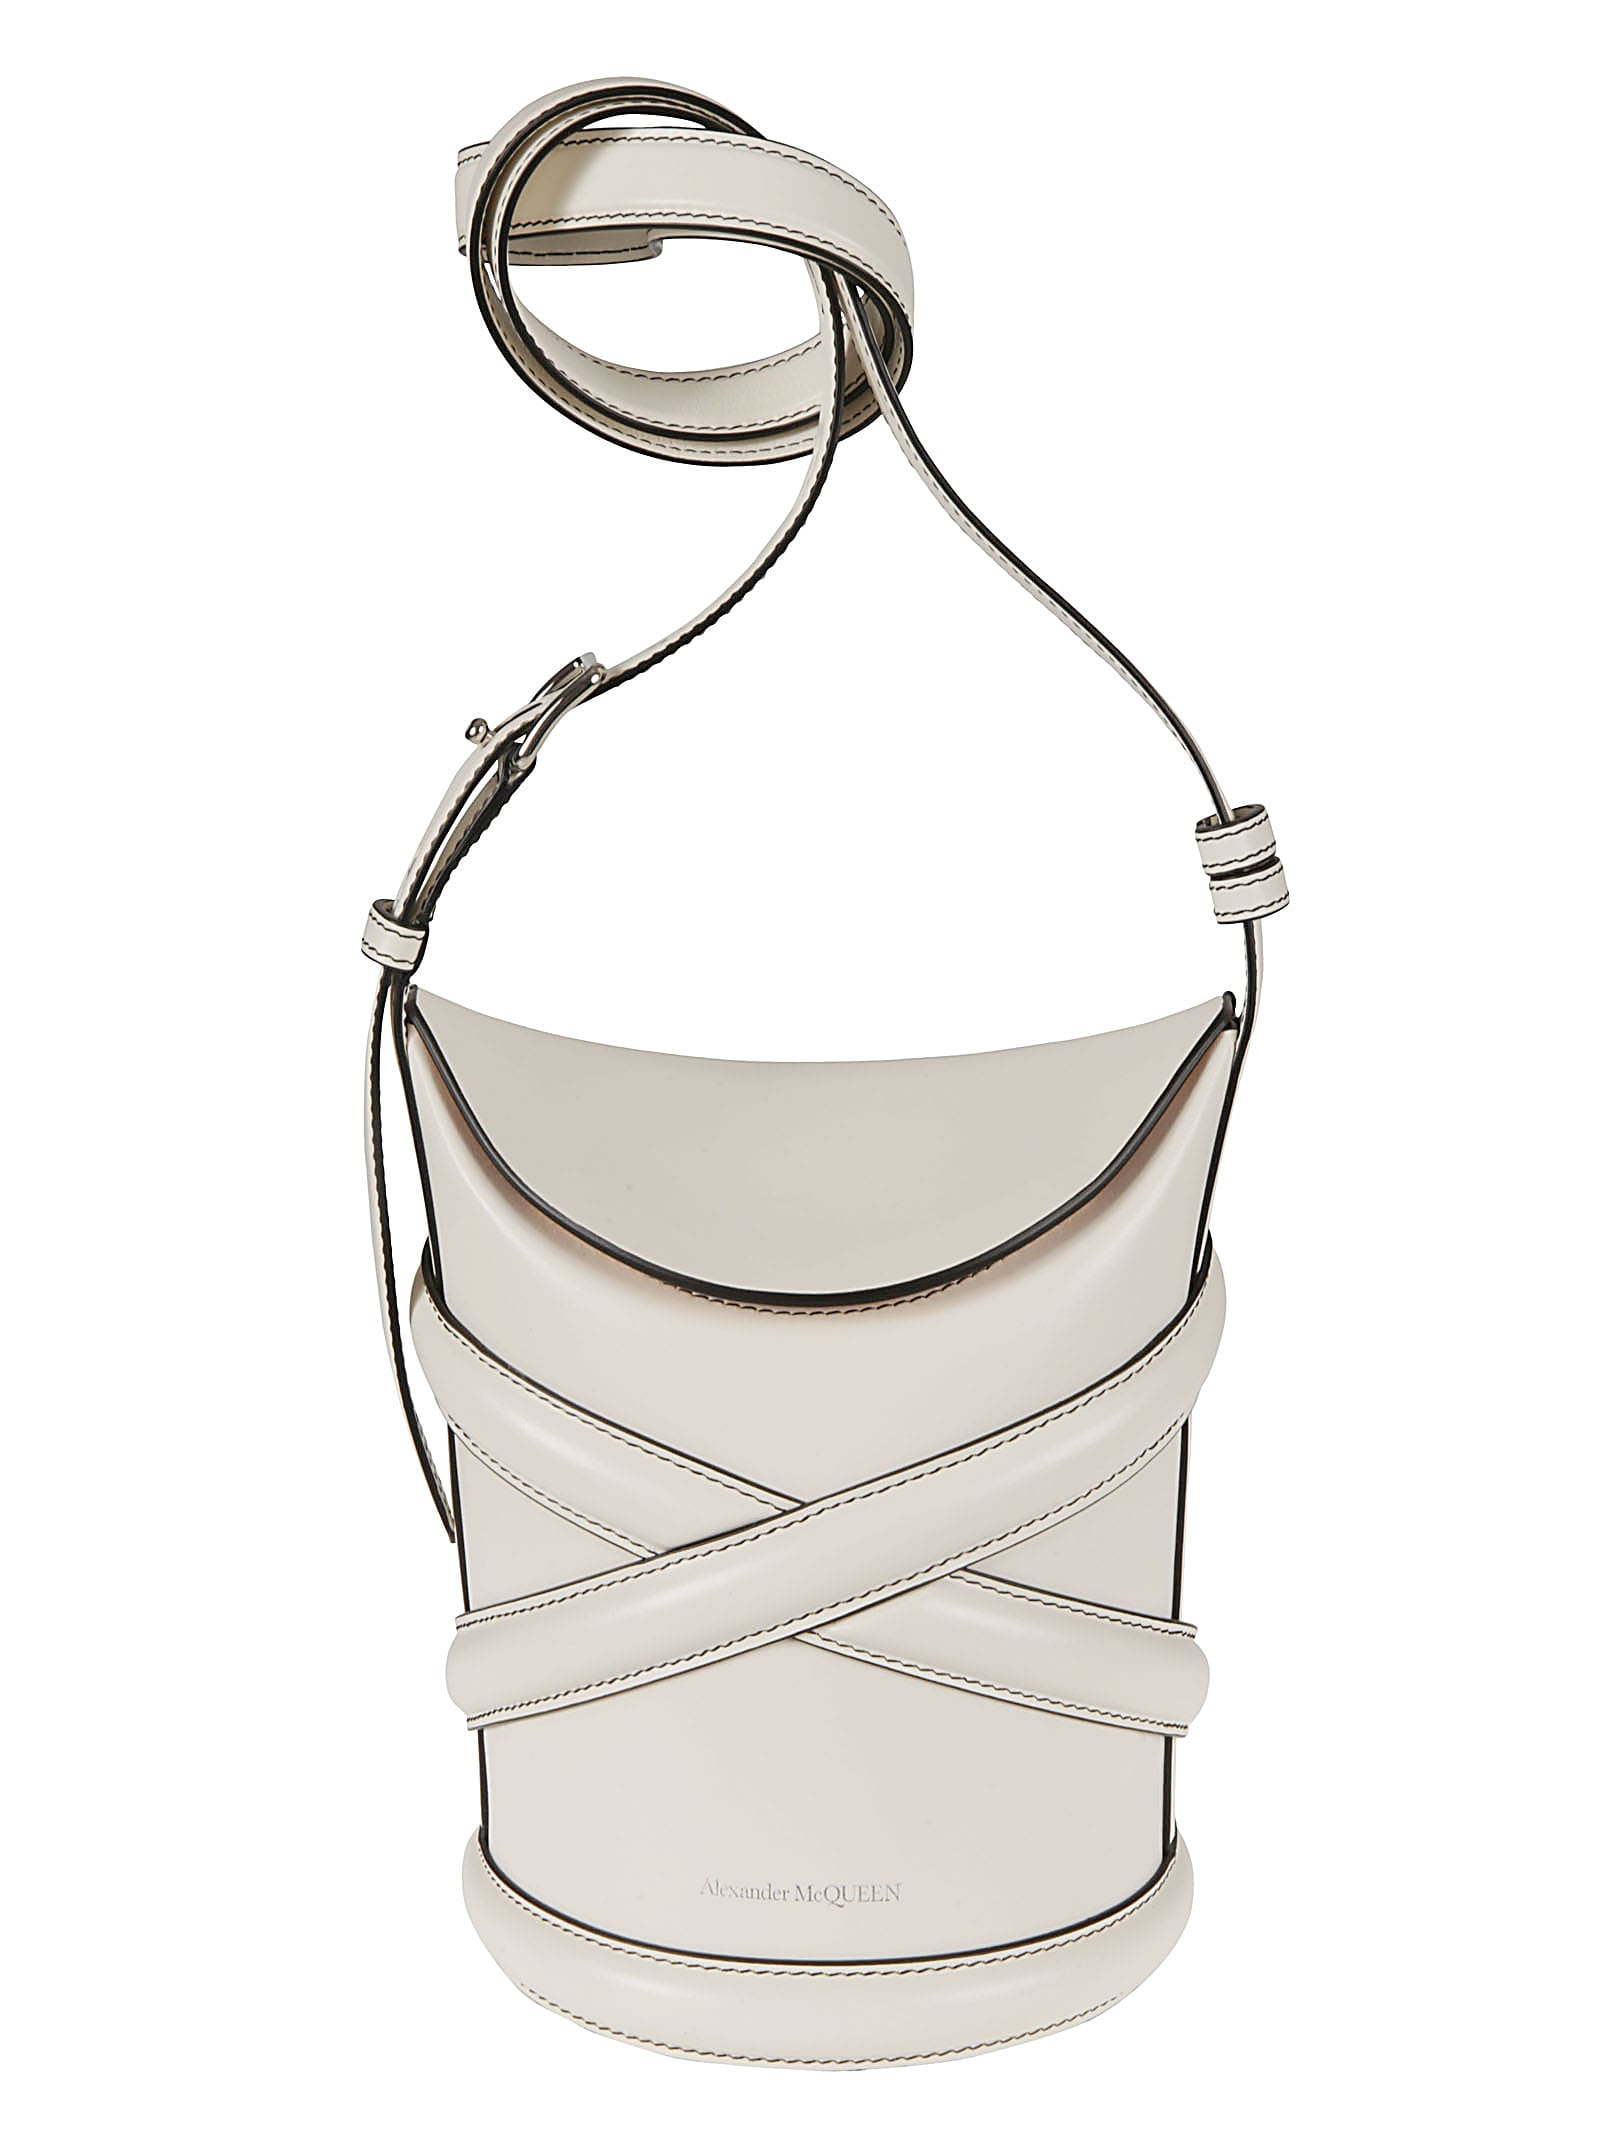 Alexander Mcqueen Leathers LOGO DETAIL SMALL CURVE BUCKET BAG